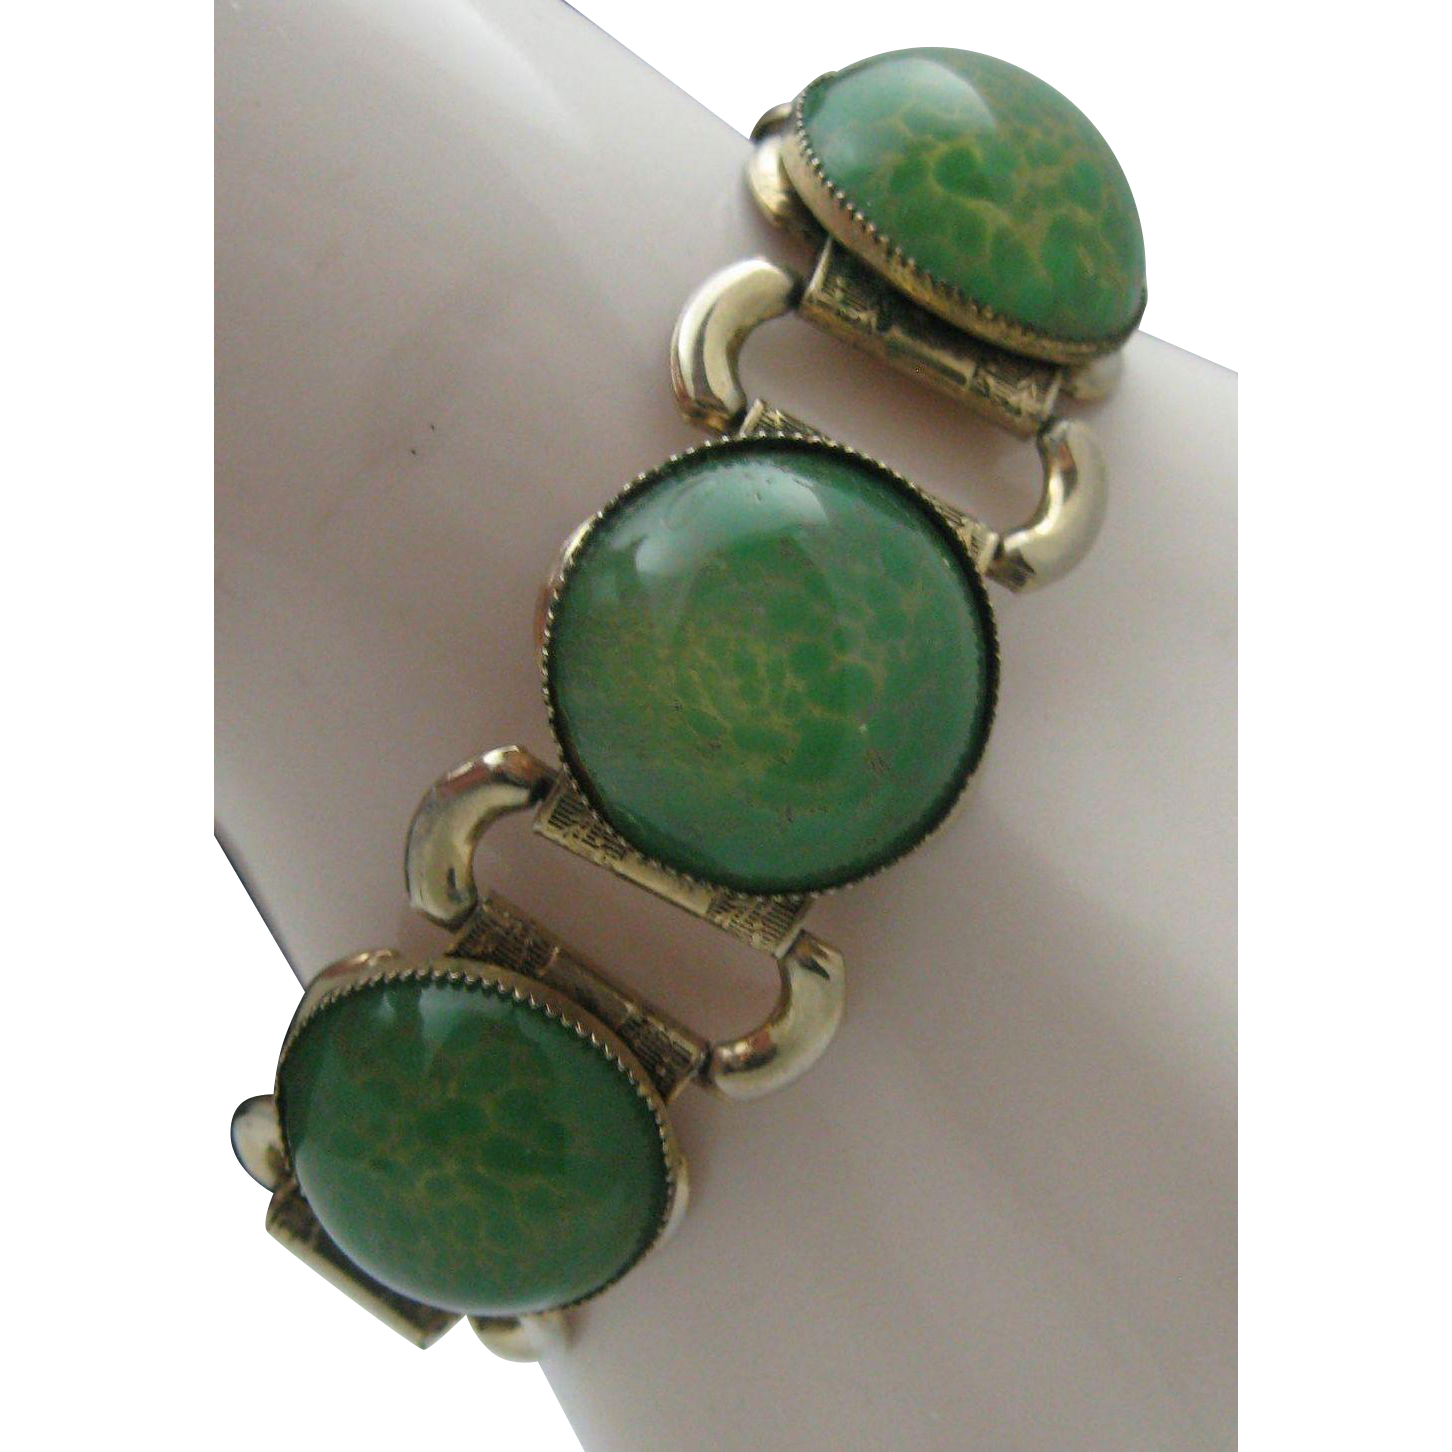 Green Glass Book Chain Bracelet c1940